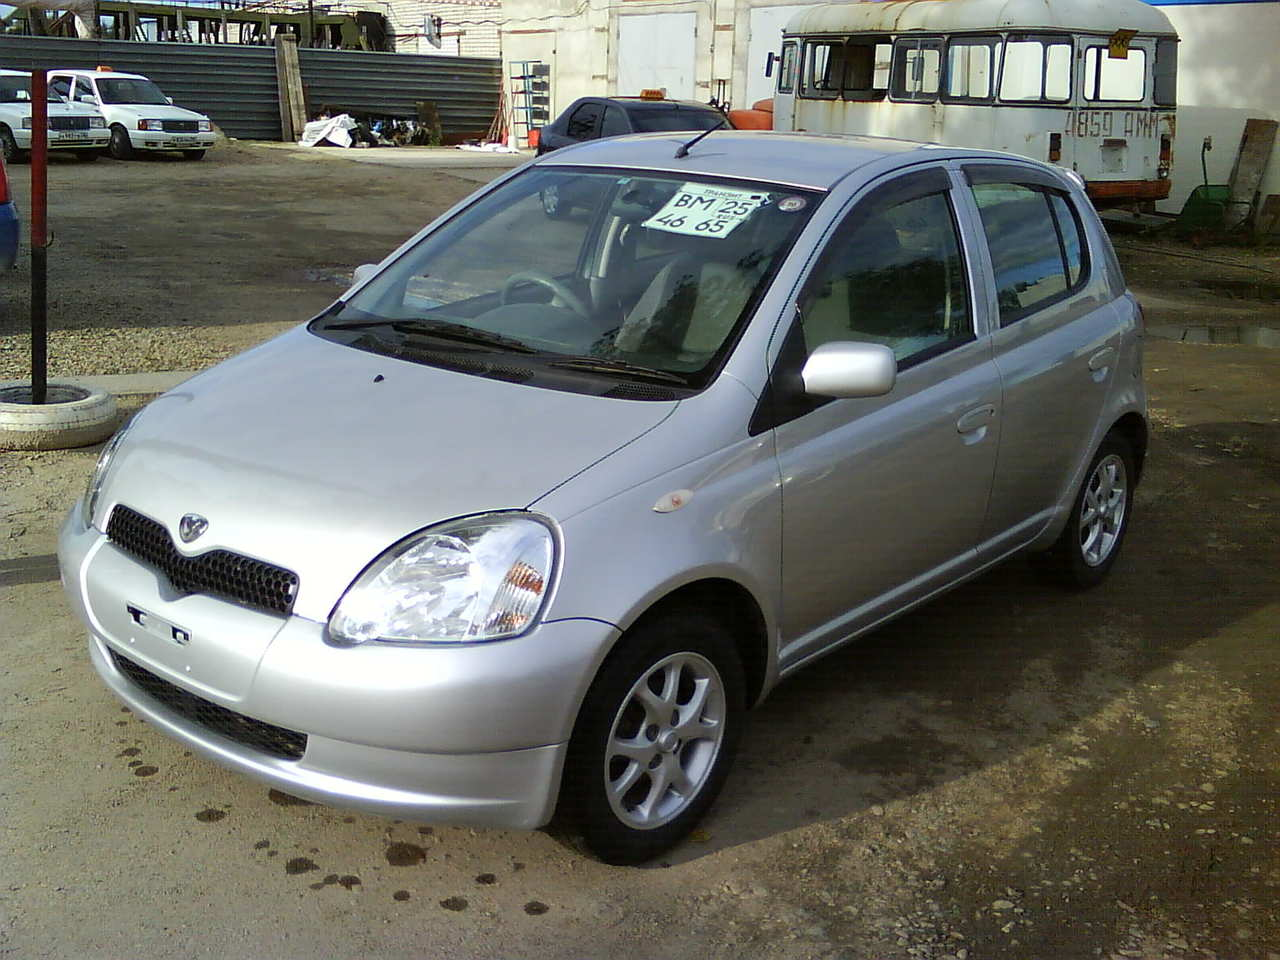 Toyota Yaris 2002 Partsopen 2001 Echo Wiring Diagram Free Download Vitz Pics 1 0 Gasoline Ff Automatic For Sale